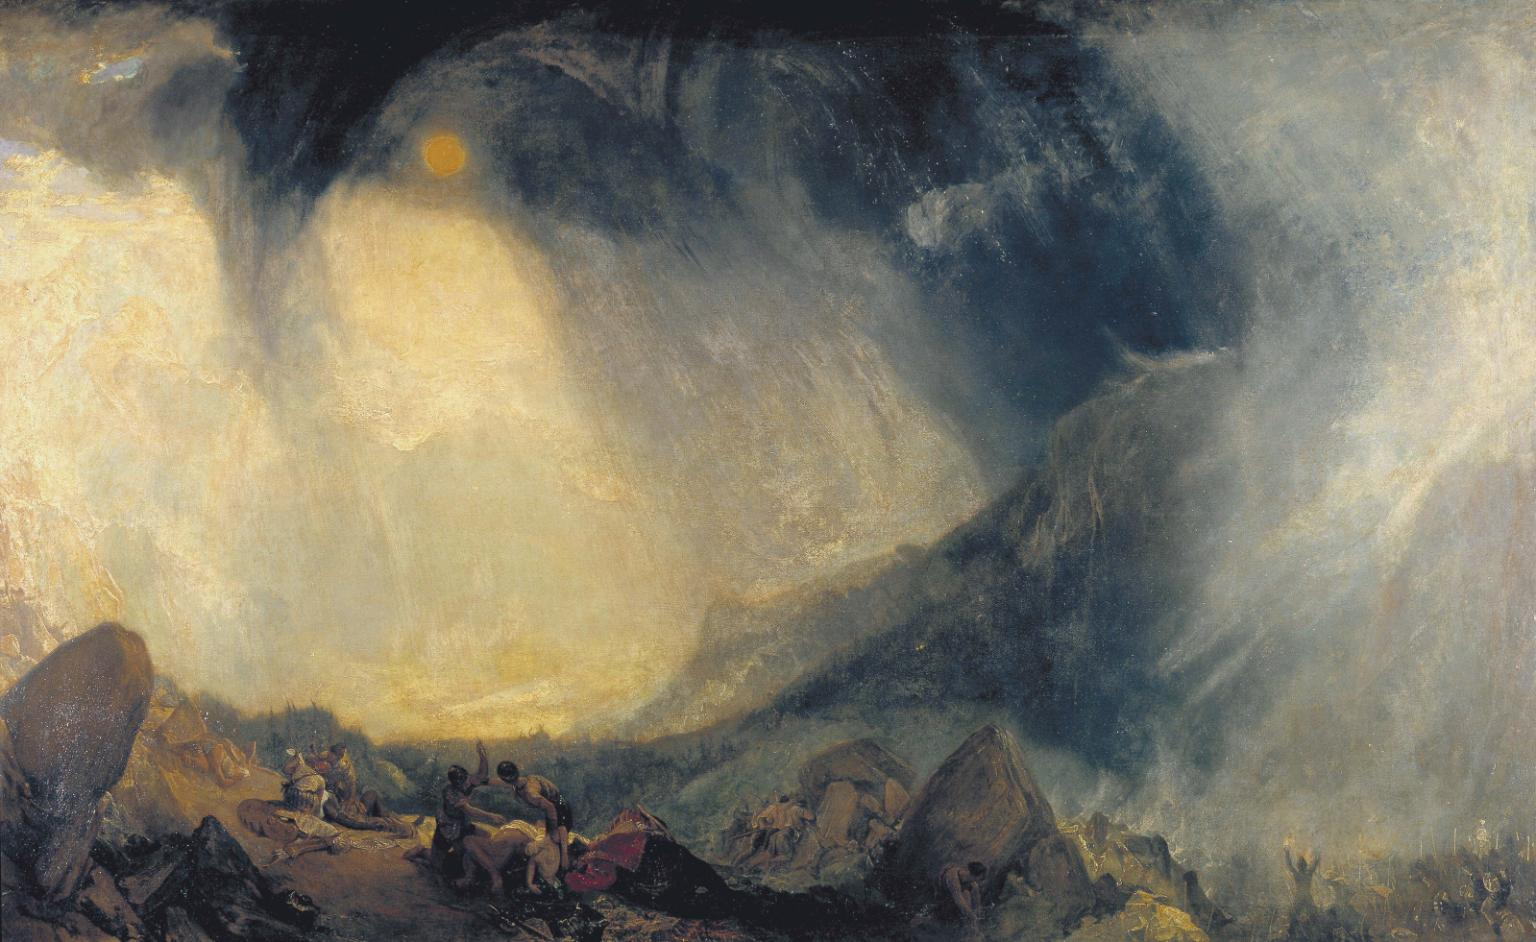 Snow Storm: Hannibal and his Army Crossing the Alps, exhibited 1812, Joseph Mallord William Turner